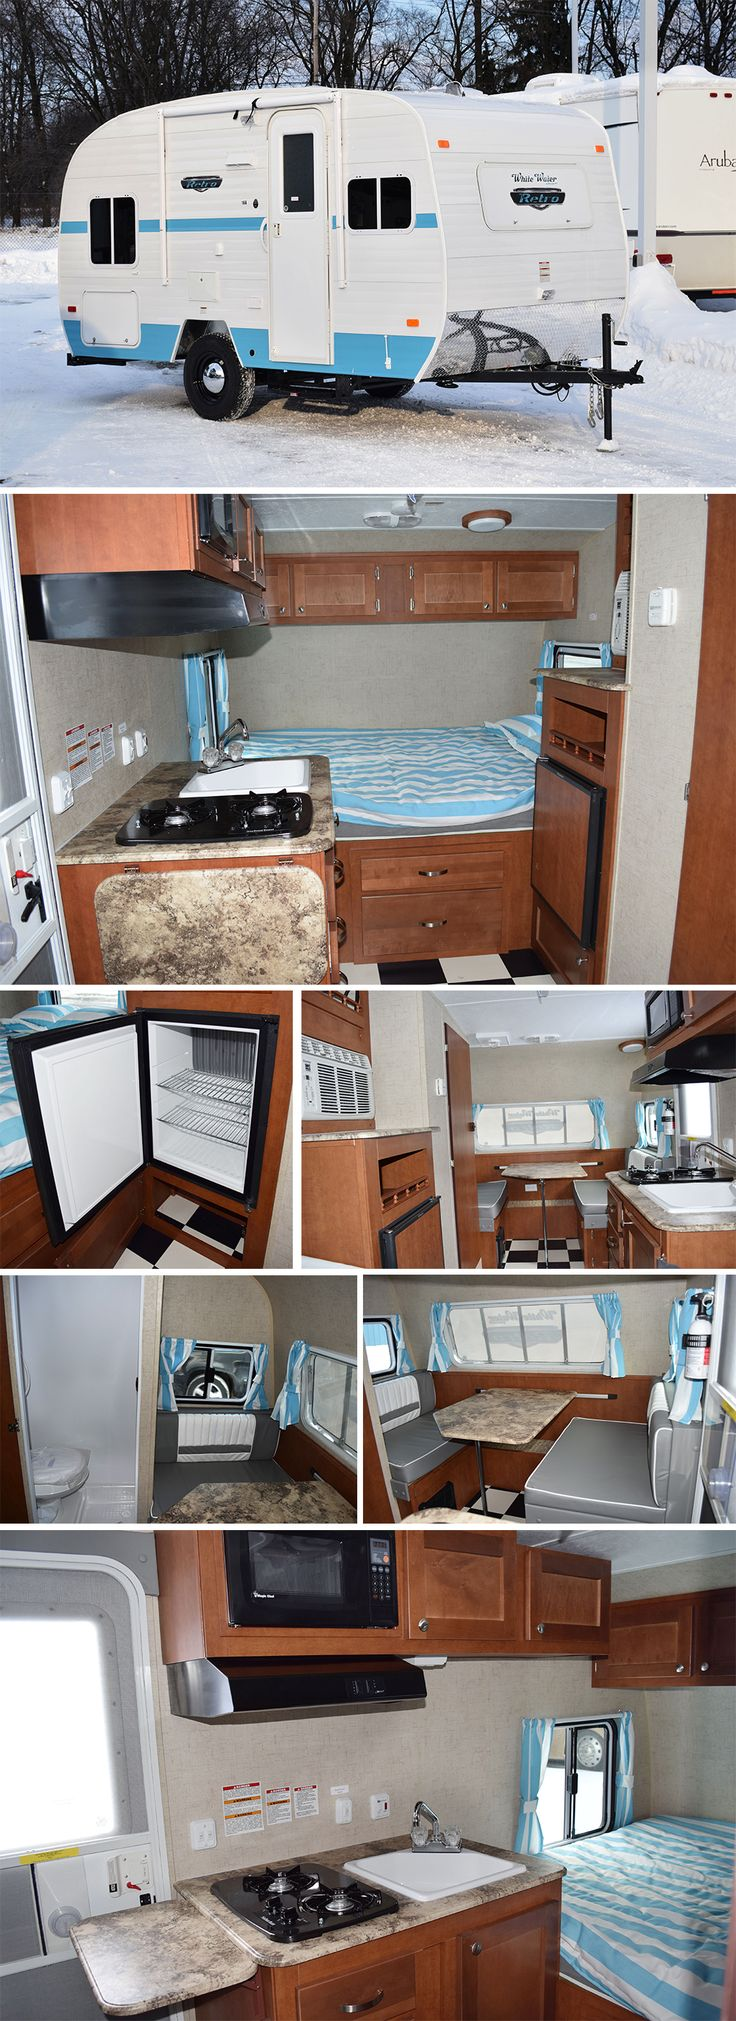 Introducing the 2015 white water retro 166 from riverside rv featuring a full queen bed